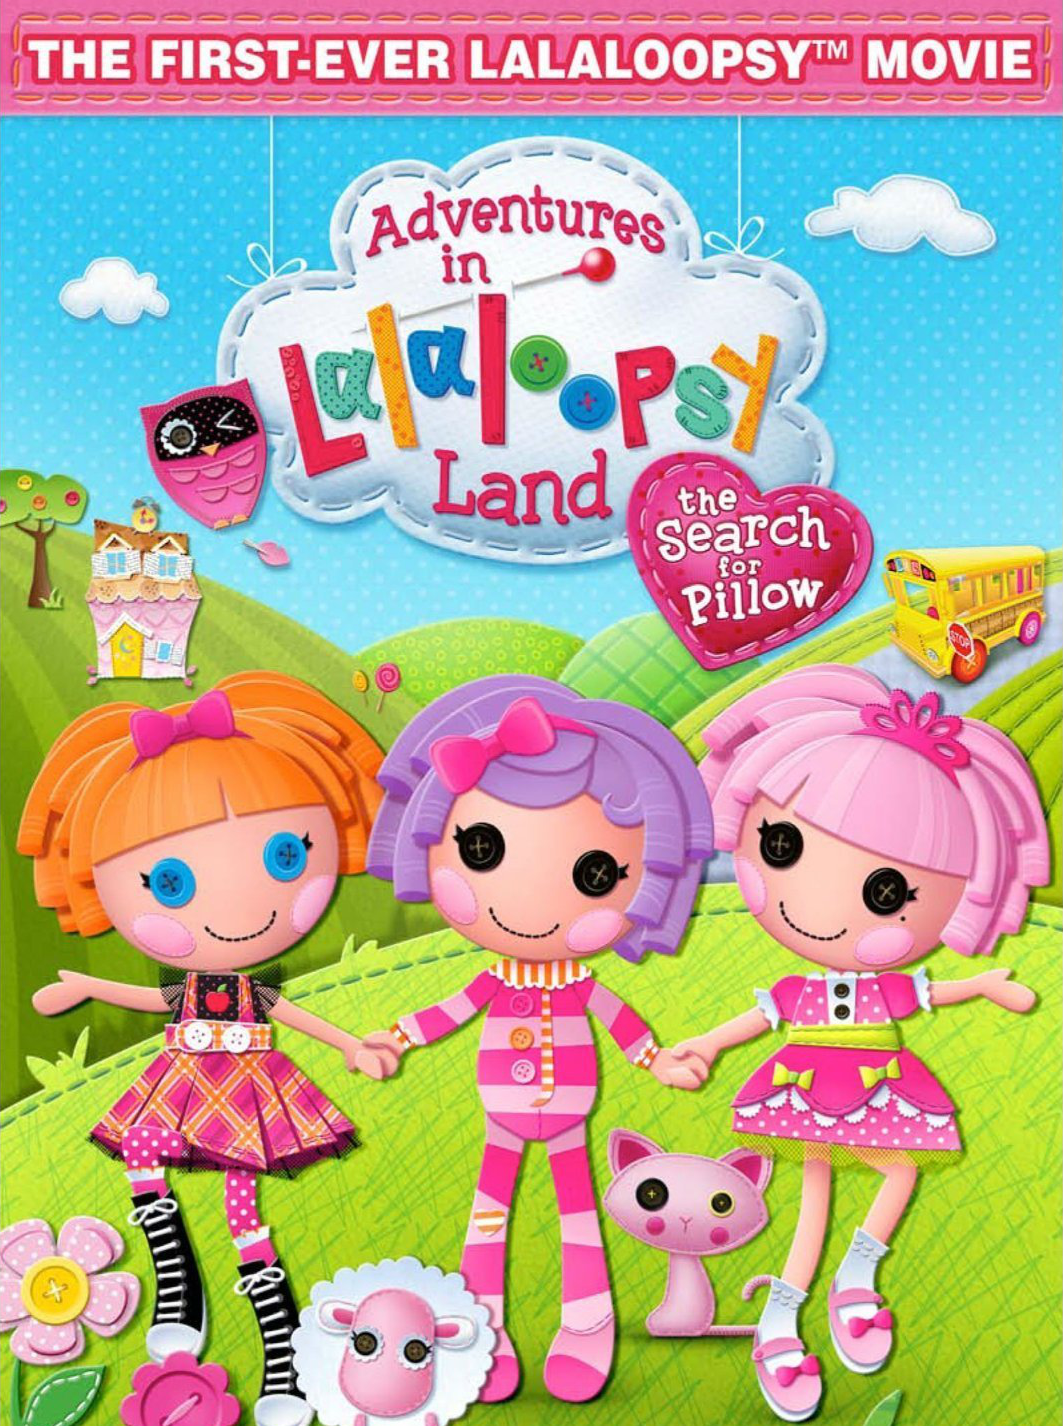 adventures in lalaloopsy land the search for pillow Adventures in Lalaloopsy Land: The Search for Pillow | Lalaloopsy  adventures in lalaloopsy land the search for pillow